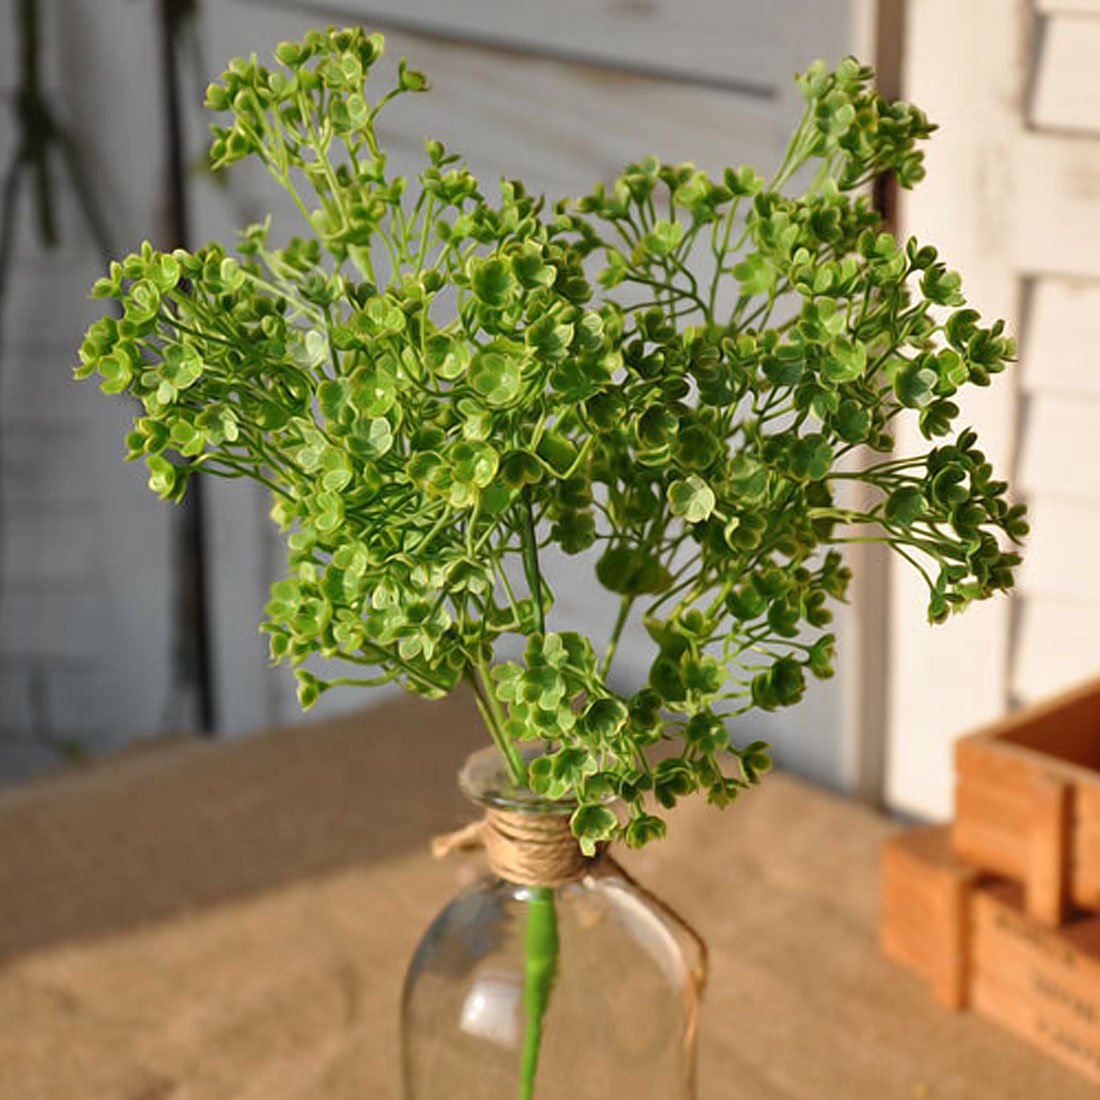 DIY Artificial Babys Breath Flower Green Leaf Artificial Succulent Plants Gypsophila Fake Flores for Wedding Home Decorations